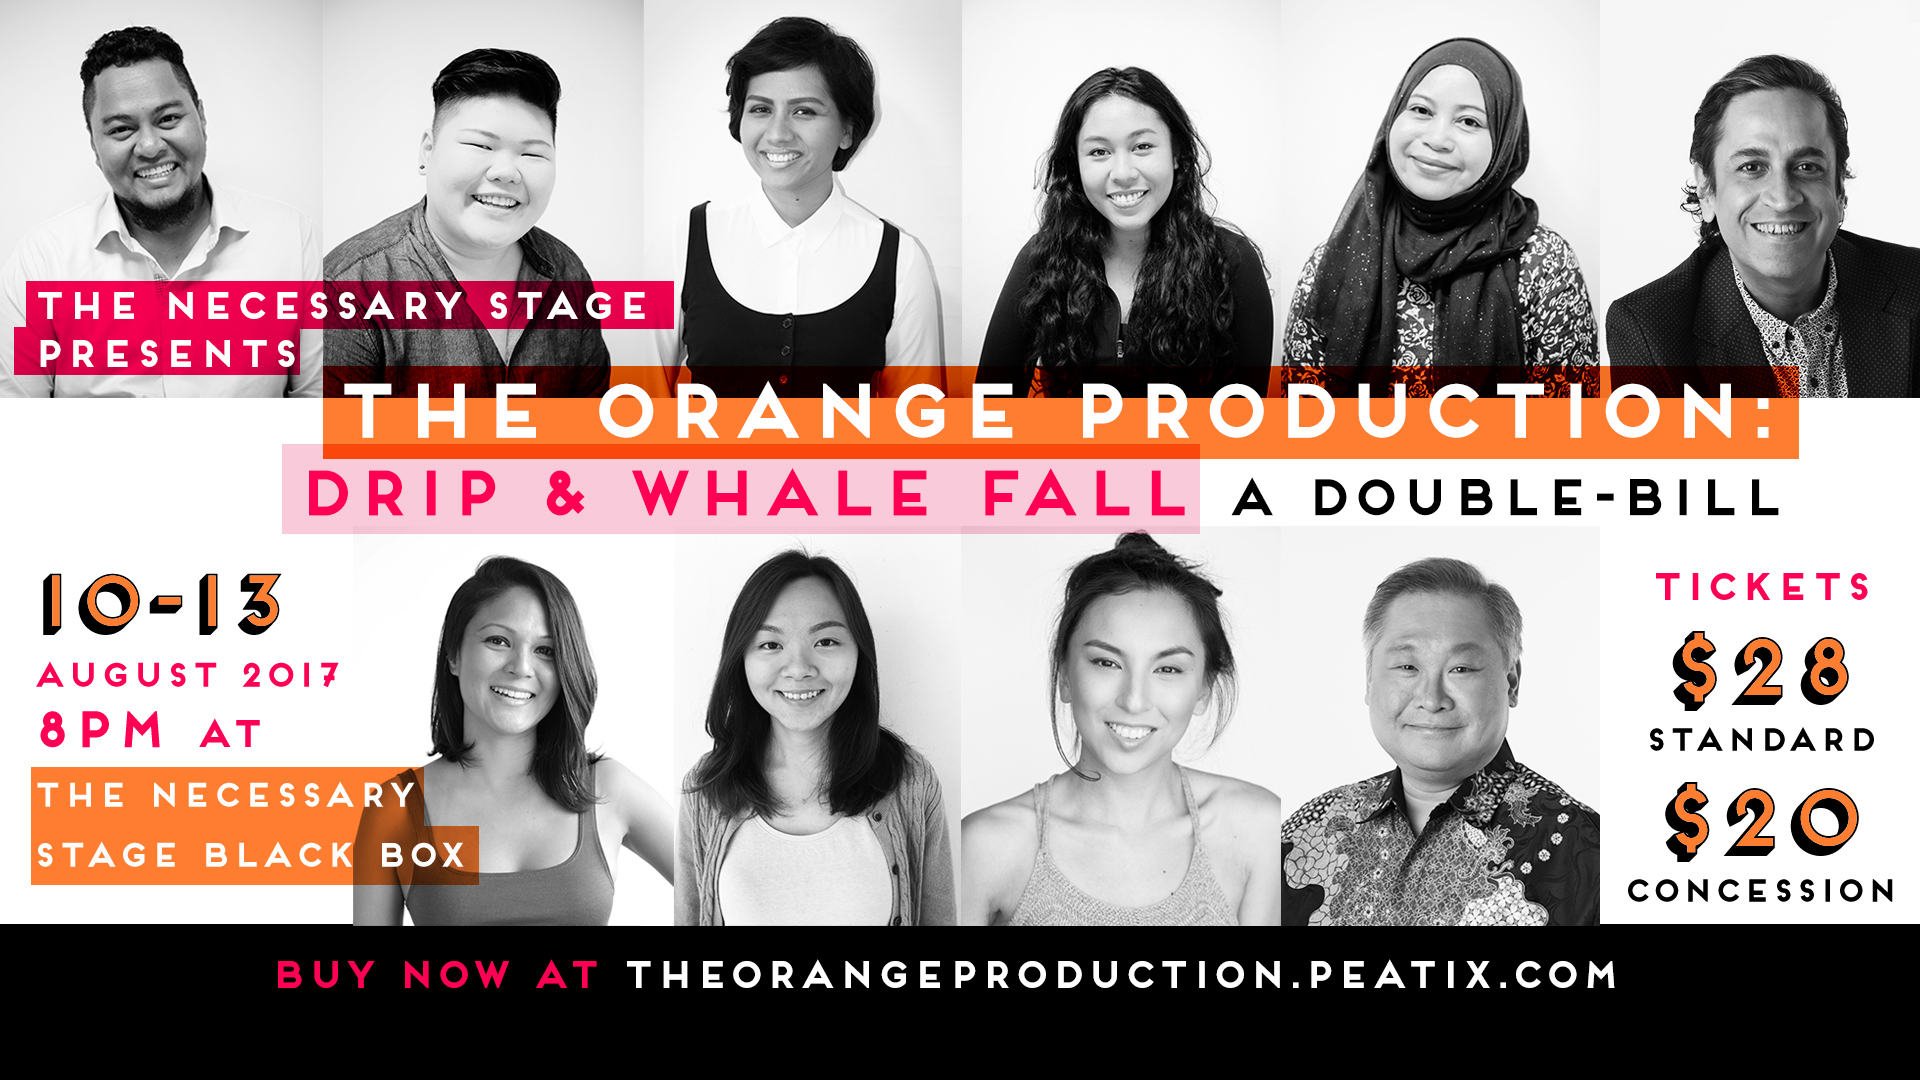 The Orange Production - FB cover event